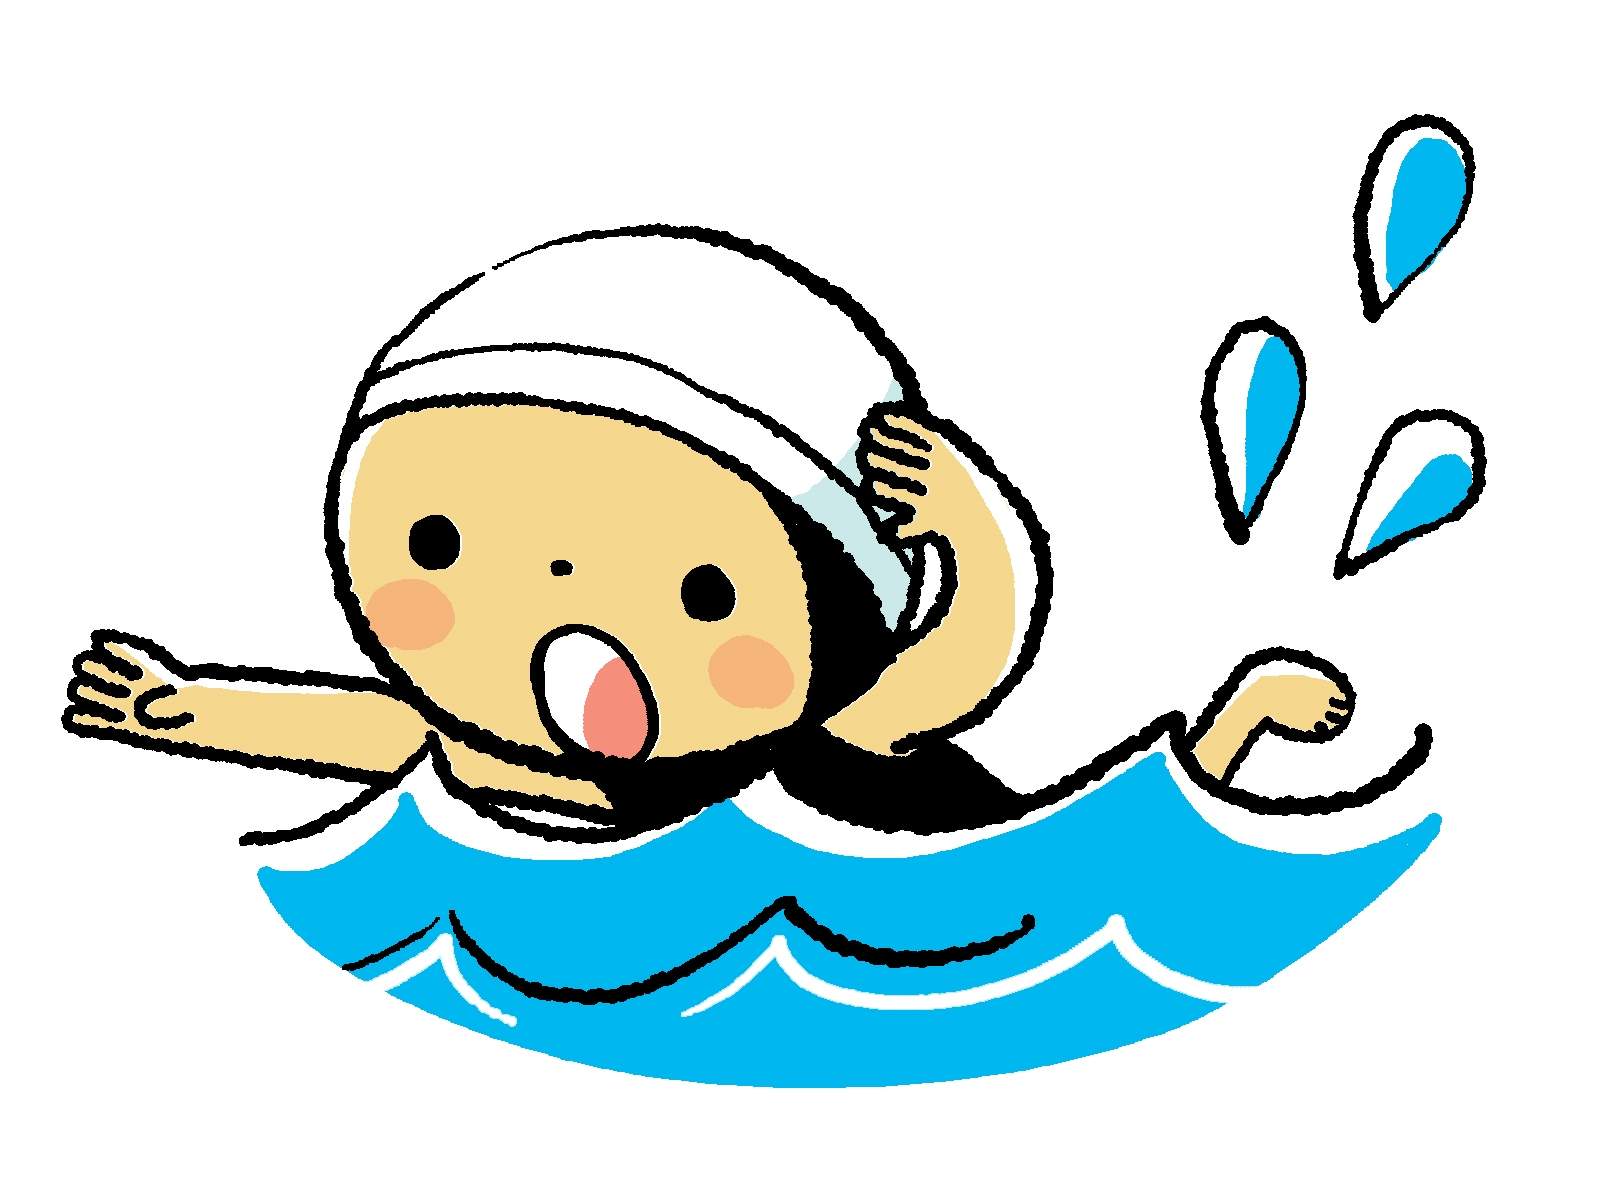 Swim clipart Awesome Baby swimming clipart ClipartPost.